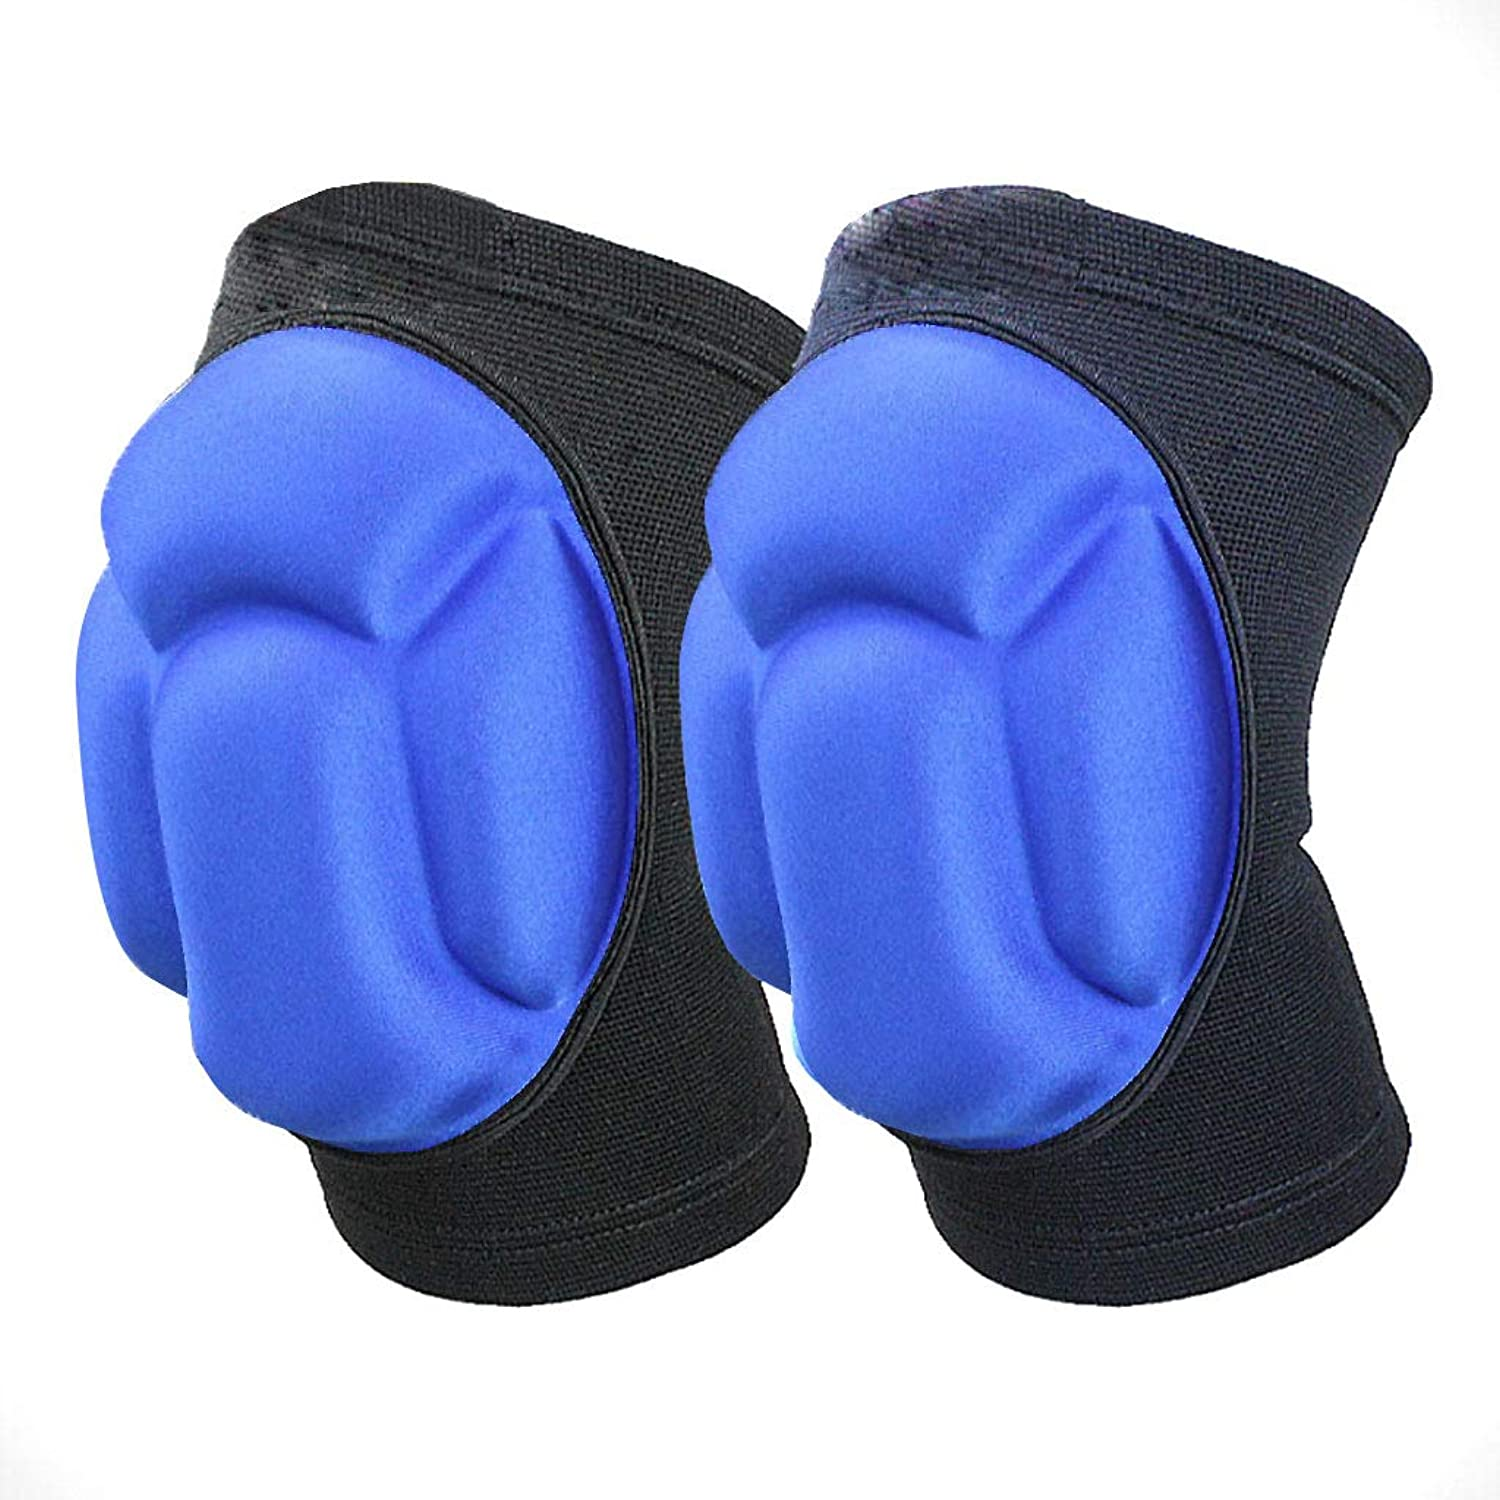 Sponge Pad Predective Knee Pads, Adjustable Knee Strap Brace Sports Knee Pads for Knee Pain Relief (2 Packs)